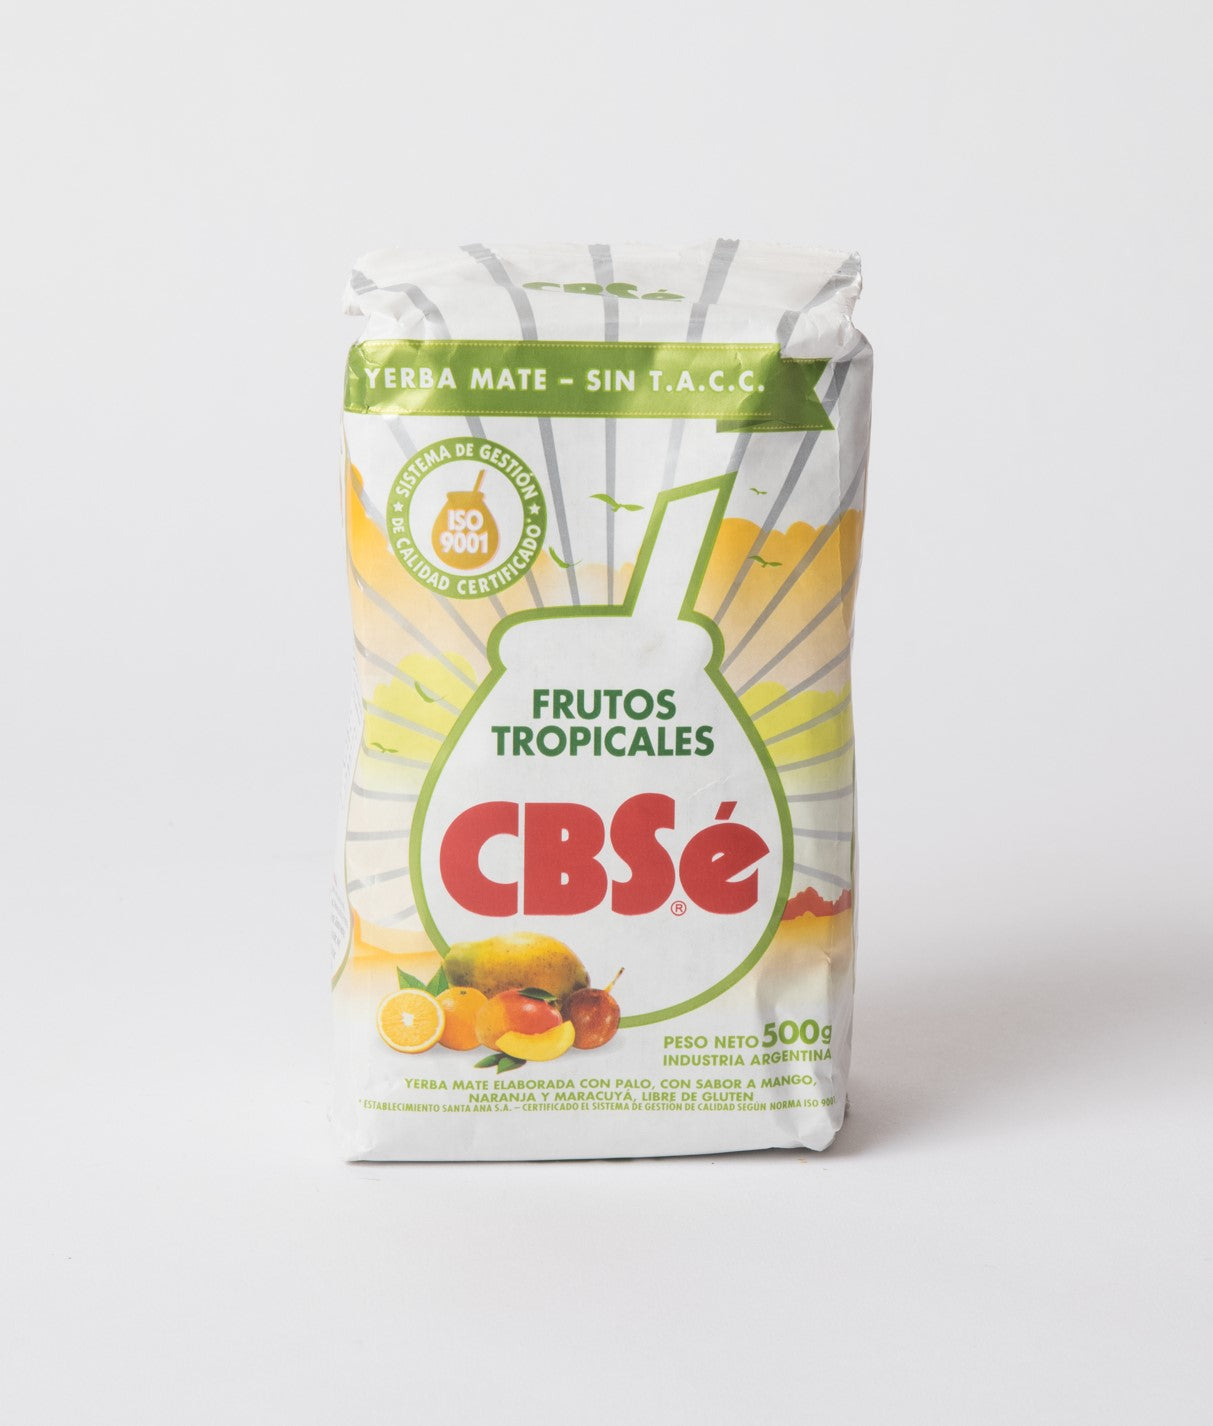 CBSE Yerba Mate Frutos Tropicales